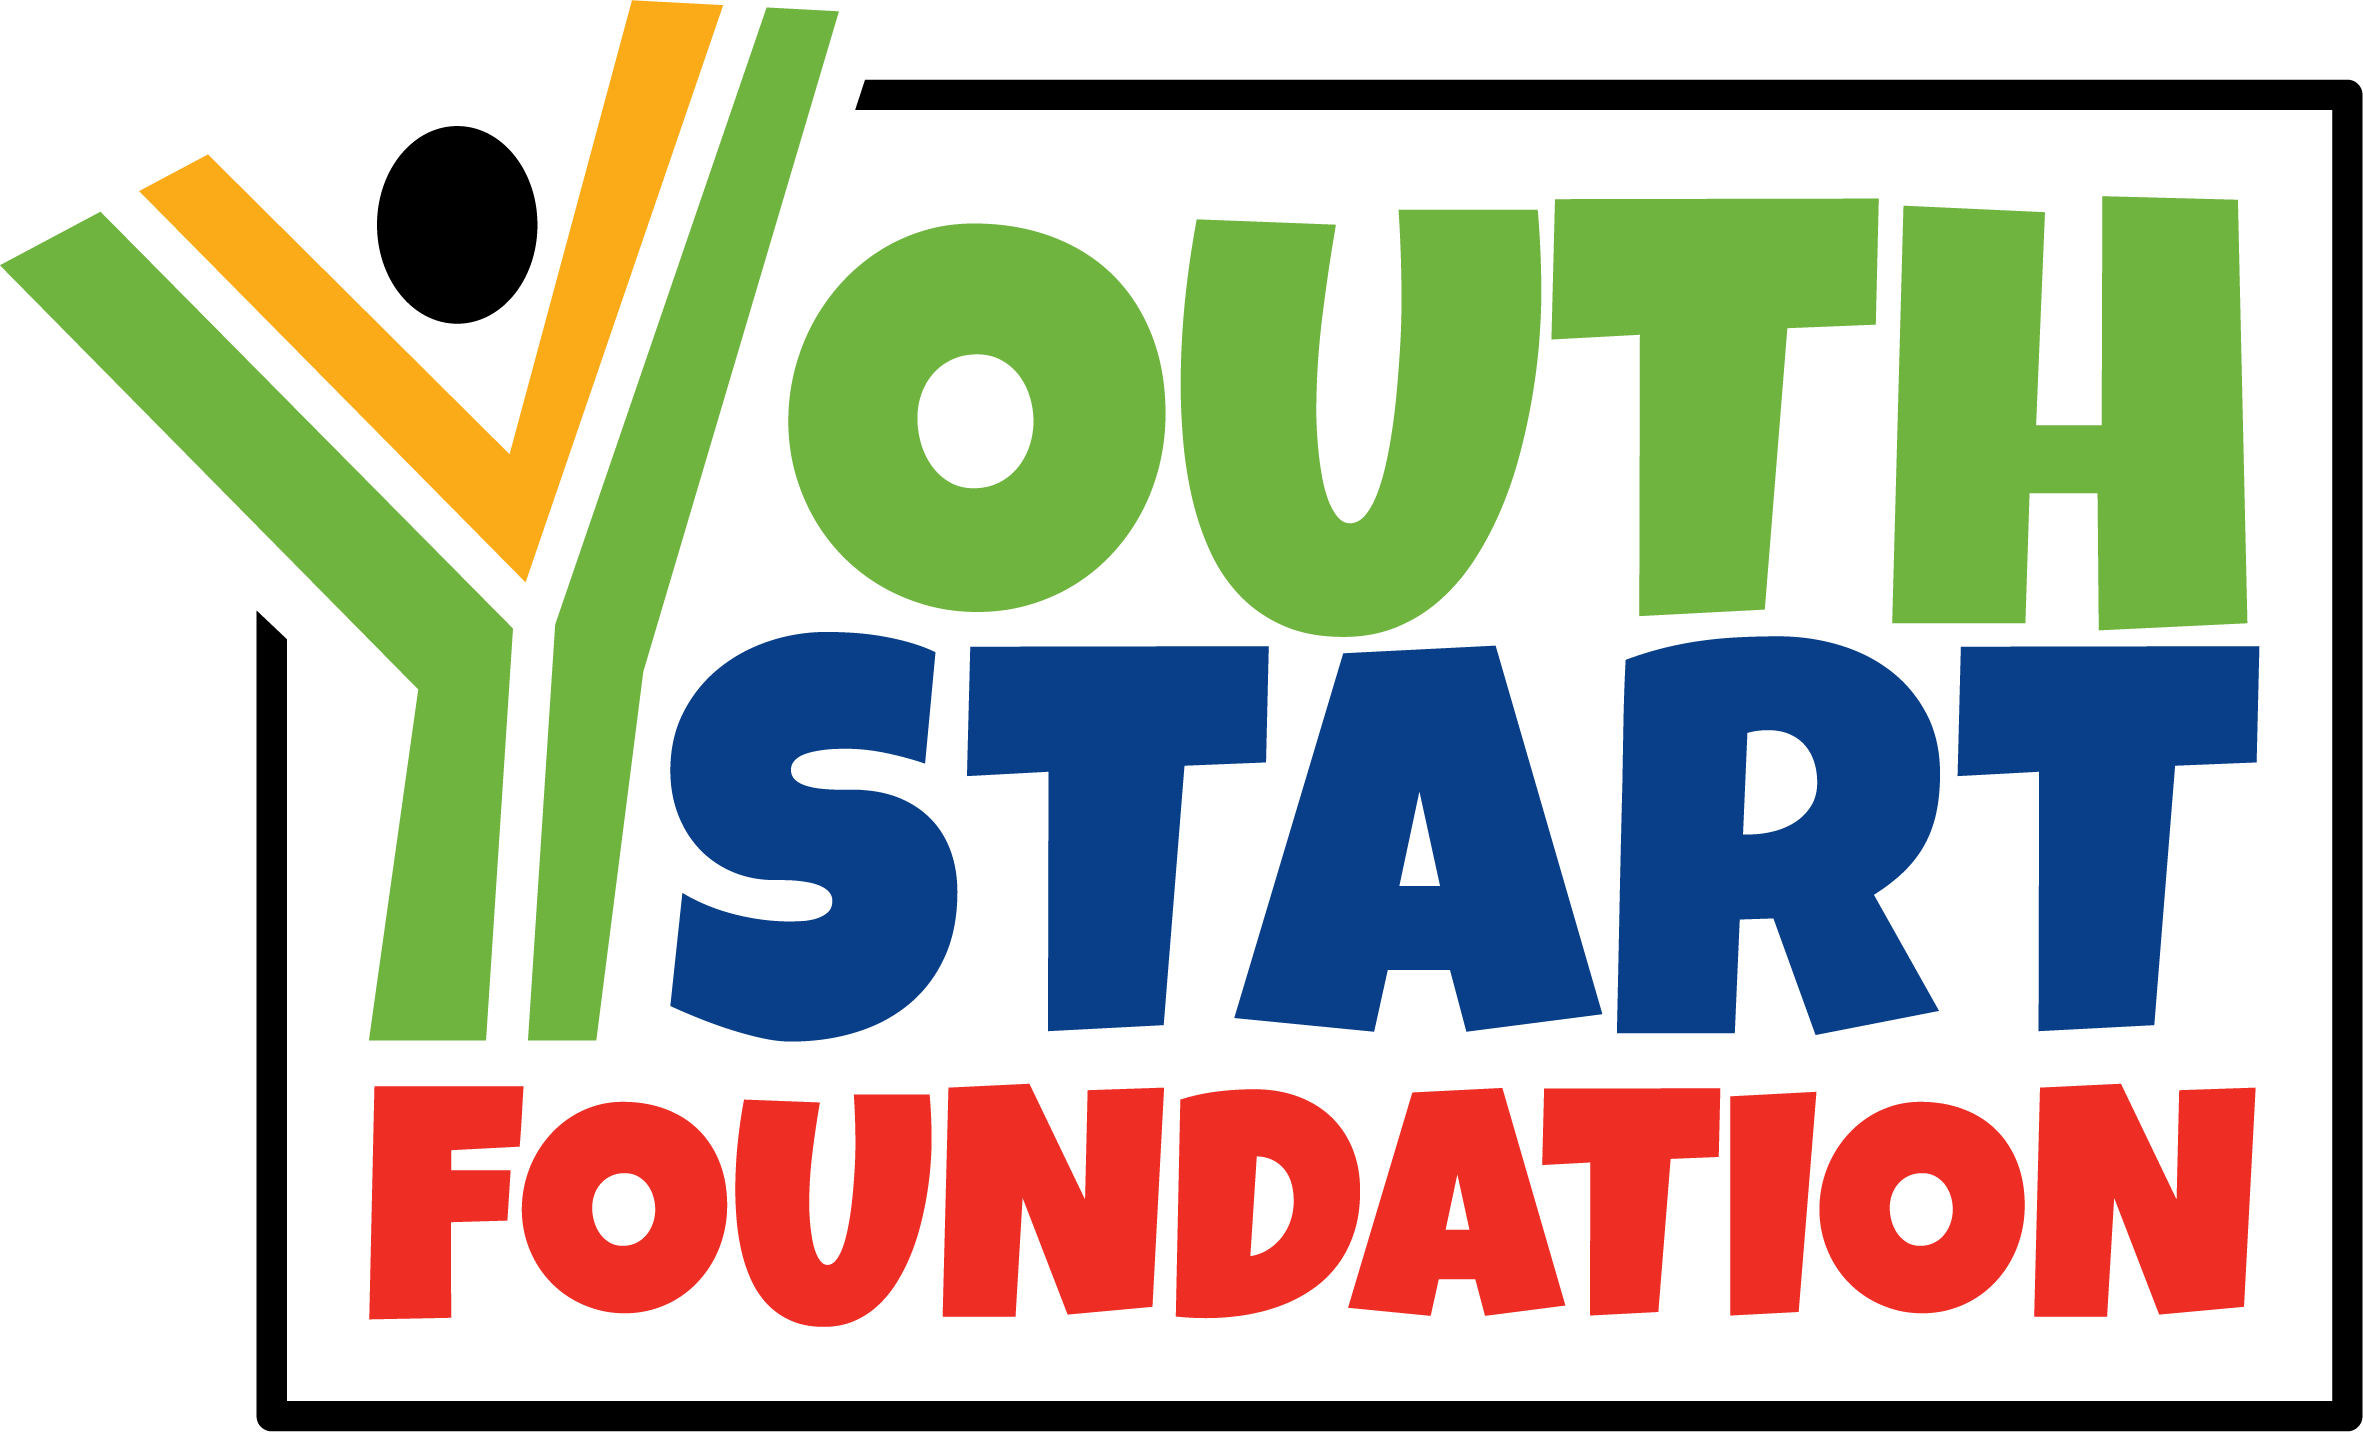 YouthStart Foundation